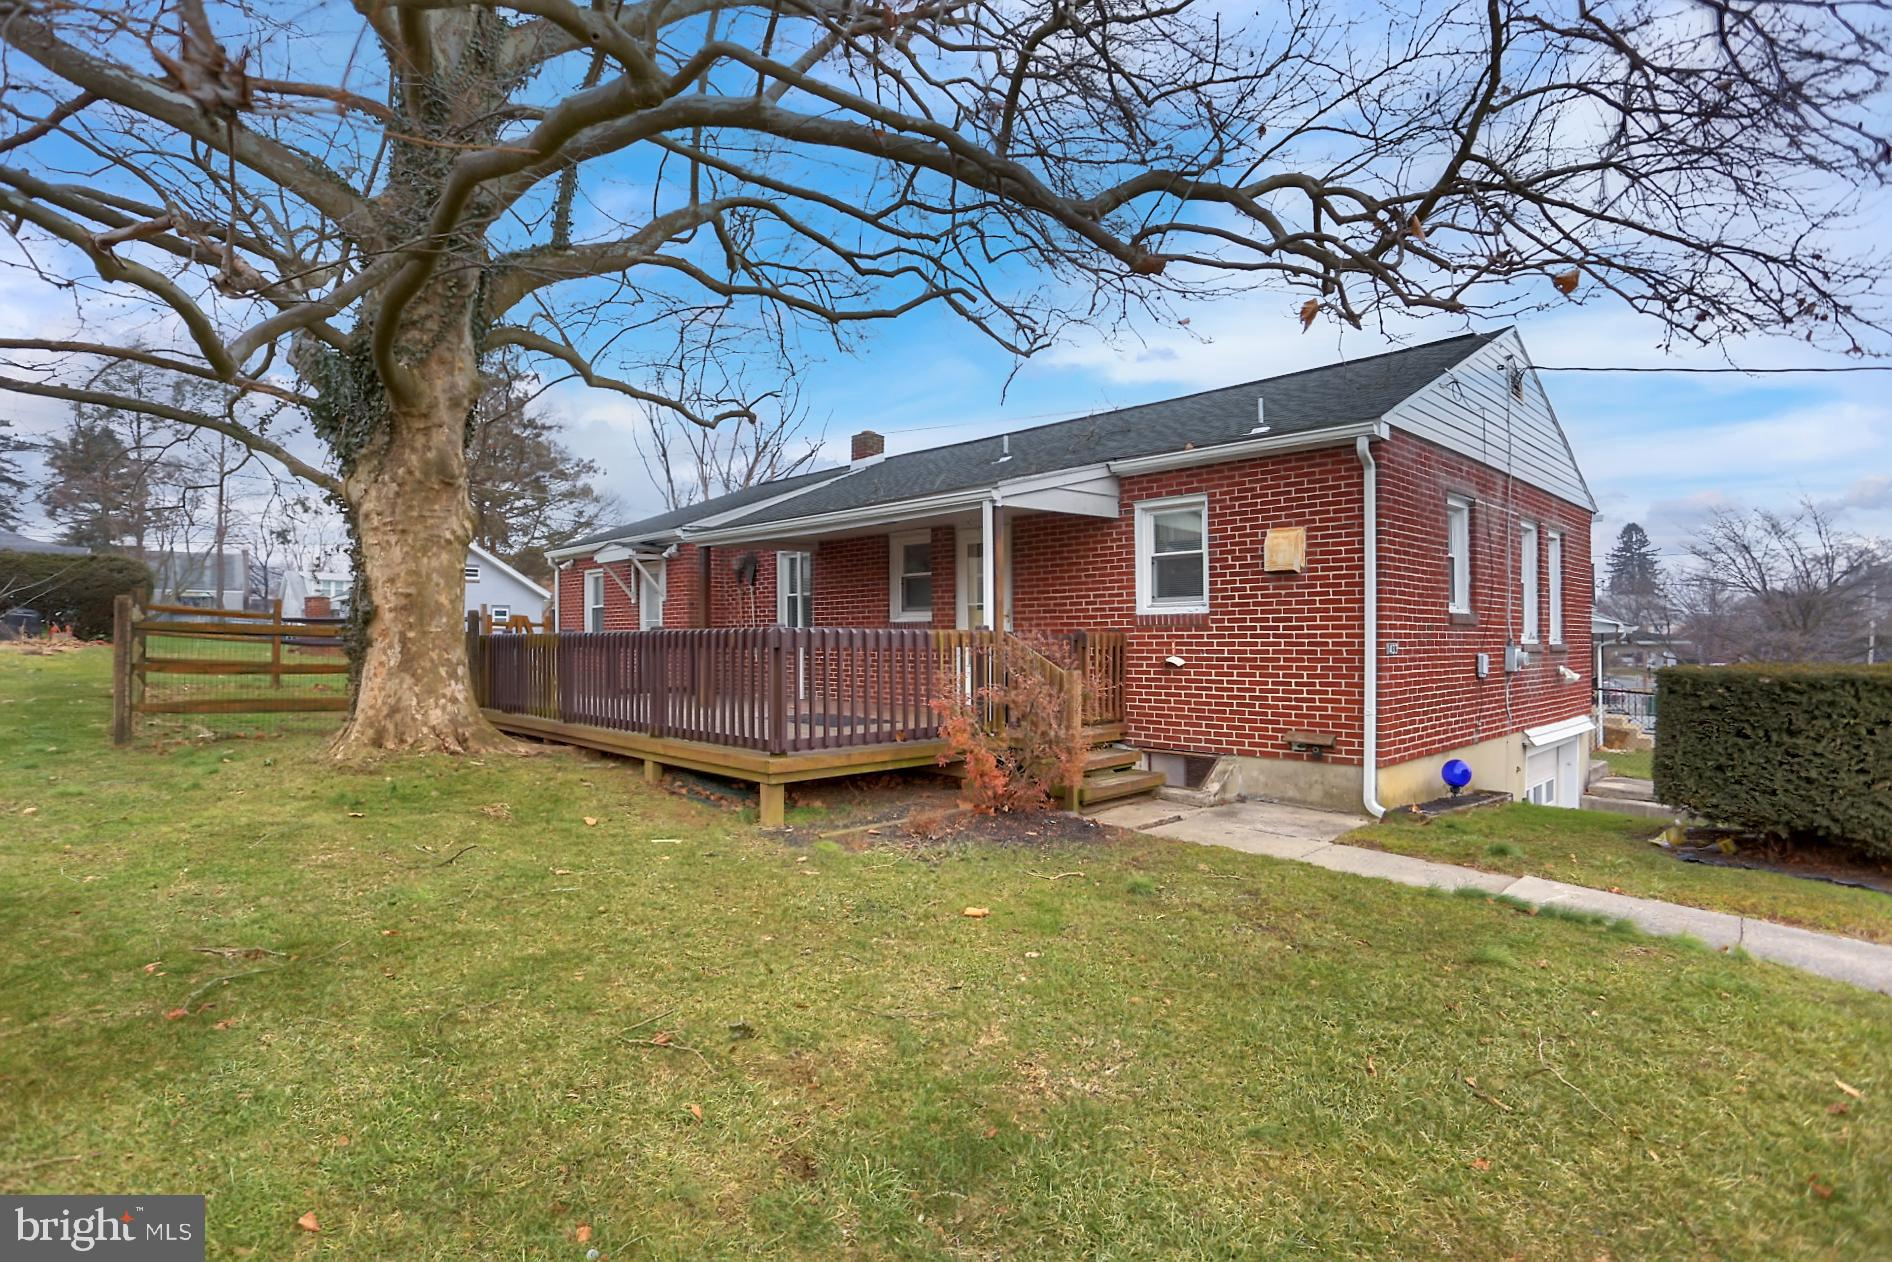 Come take a look at this Lovely Brick Rancher!   Governor Mifflin Schools!  3 bedrooms, 1 bath.  Updated kitchen with all appliances remaining and new flooring!  Updated carpeting throughout!  Spacious living room! 3 private bedrooms.   Basement 1 car garage.  Nice yard, side deck! Great location!